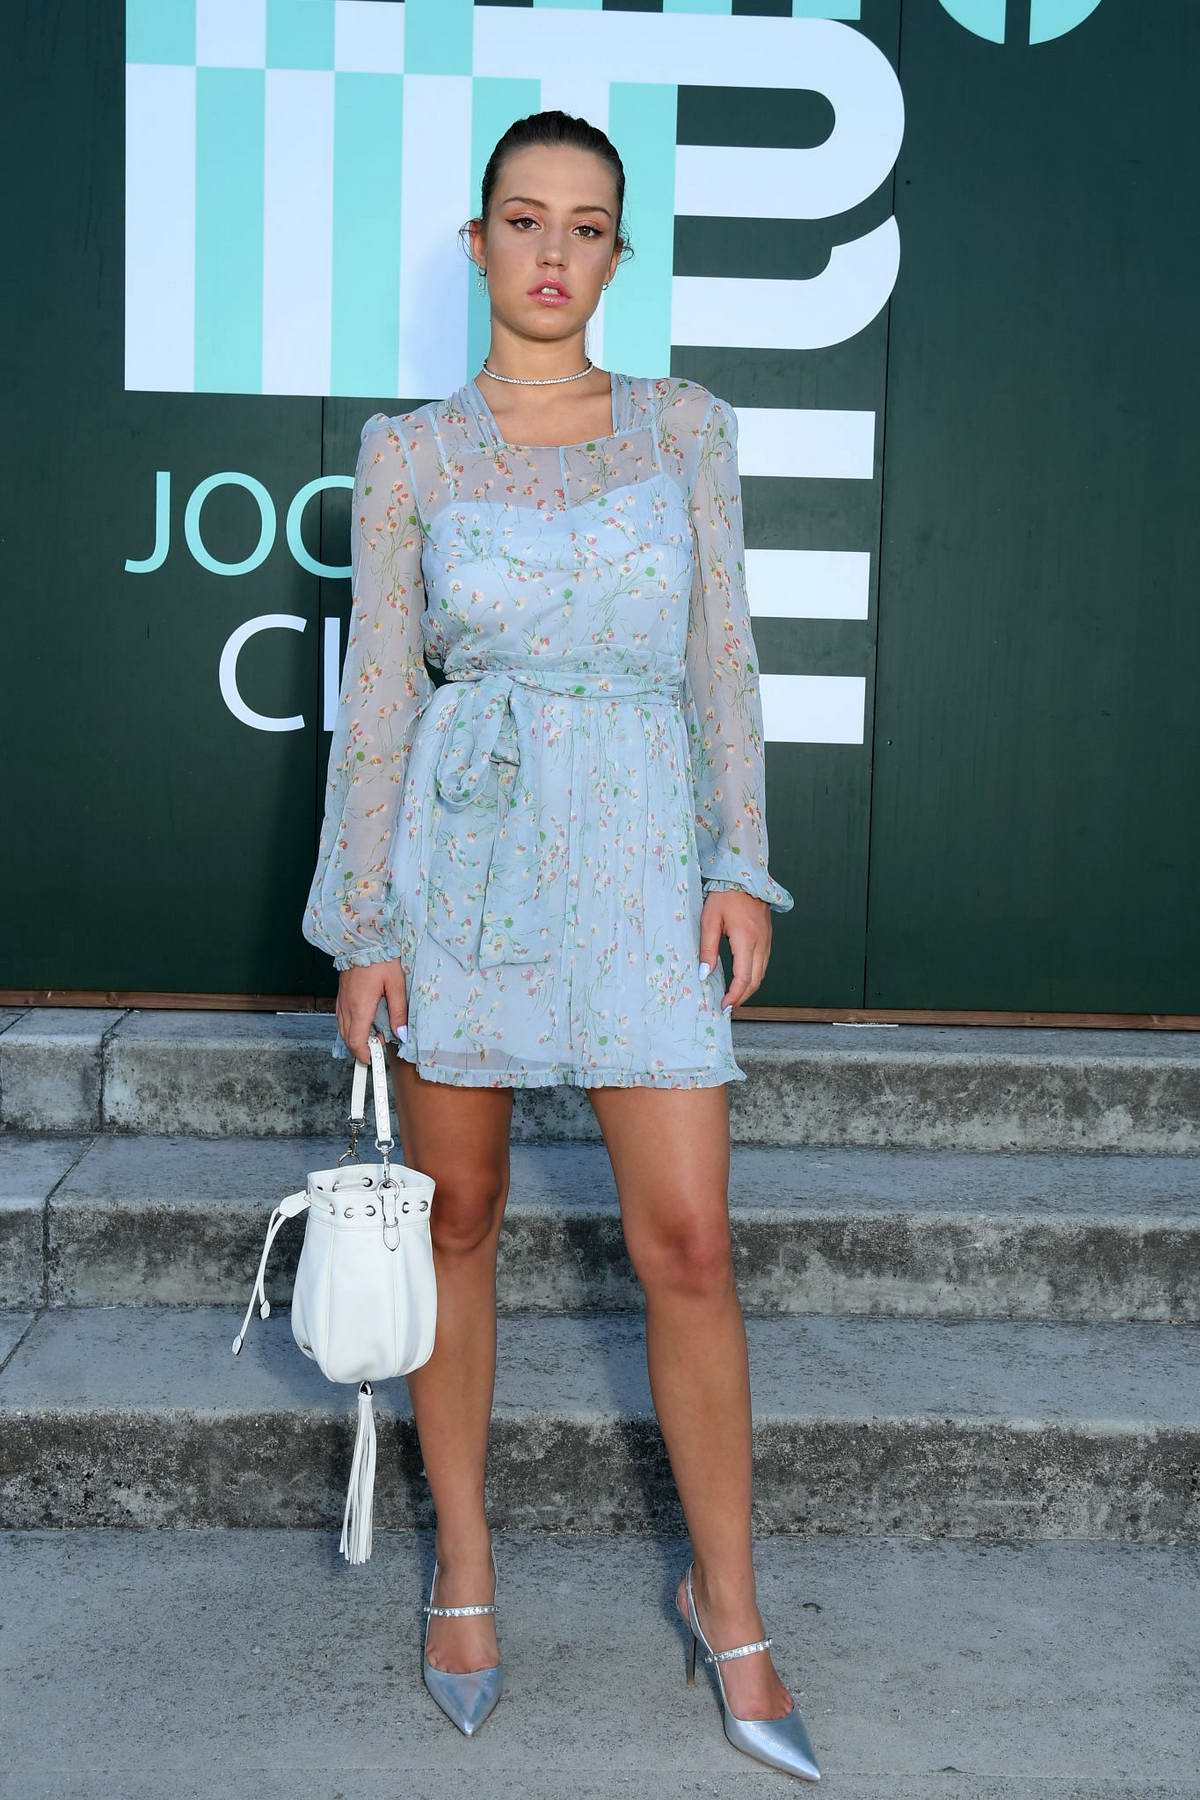 Adele Exarchopoulos attends Miu Miu Club event at Hippodrome d'Auteuil in Paris, France